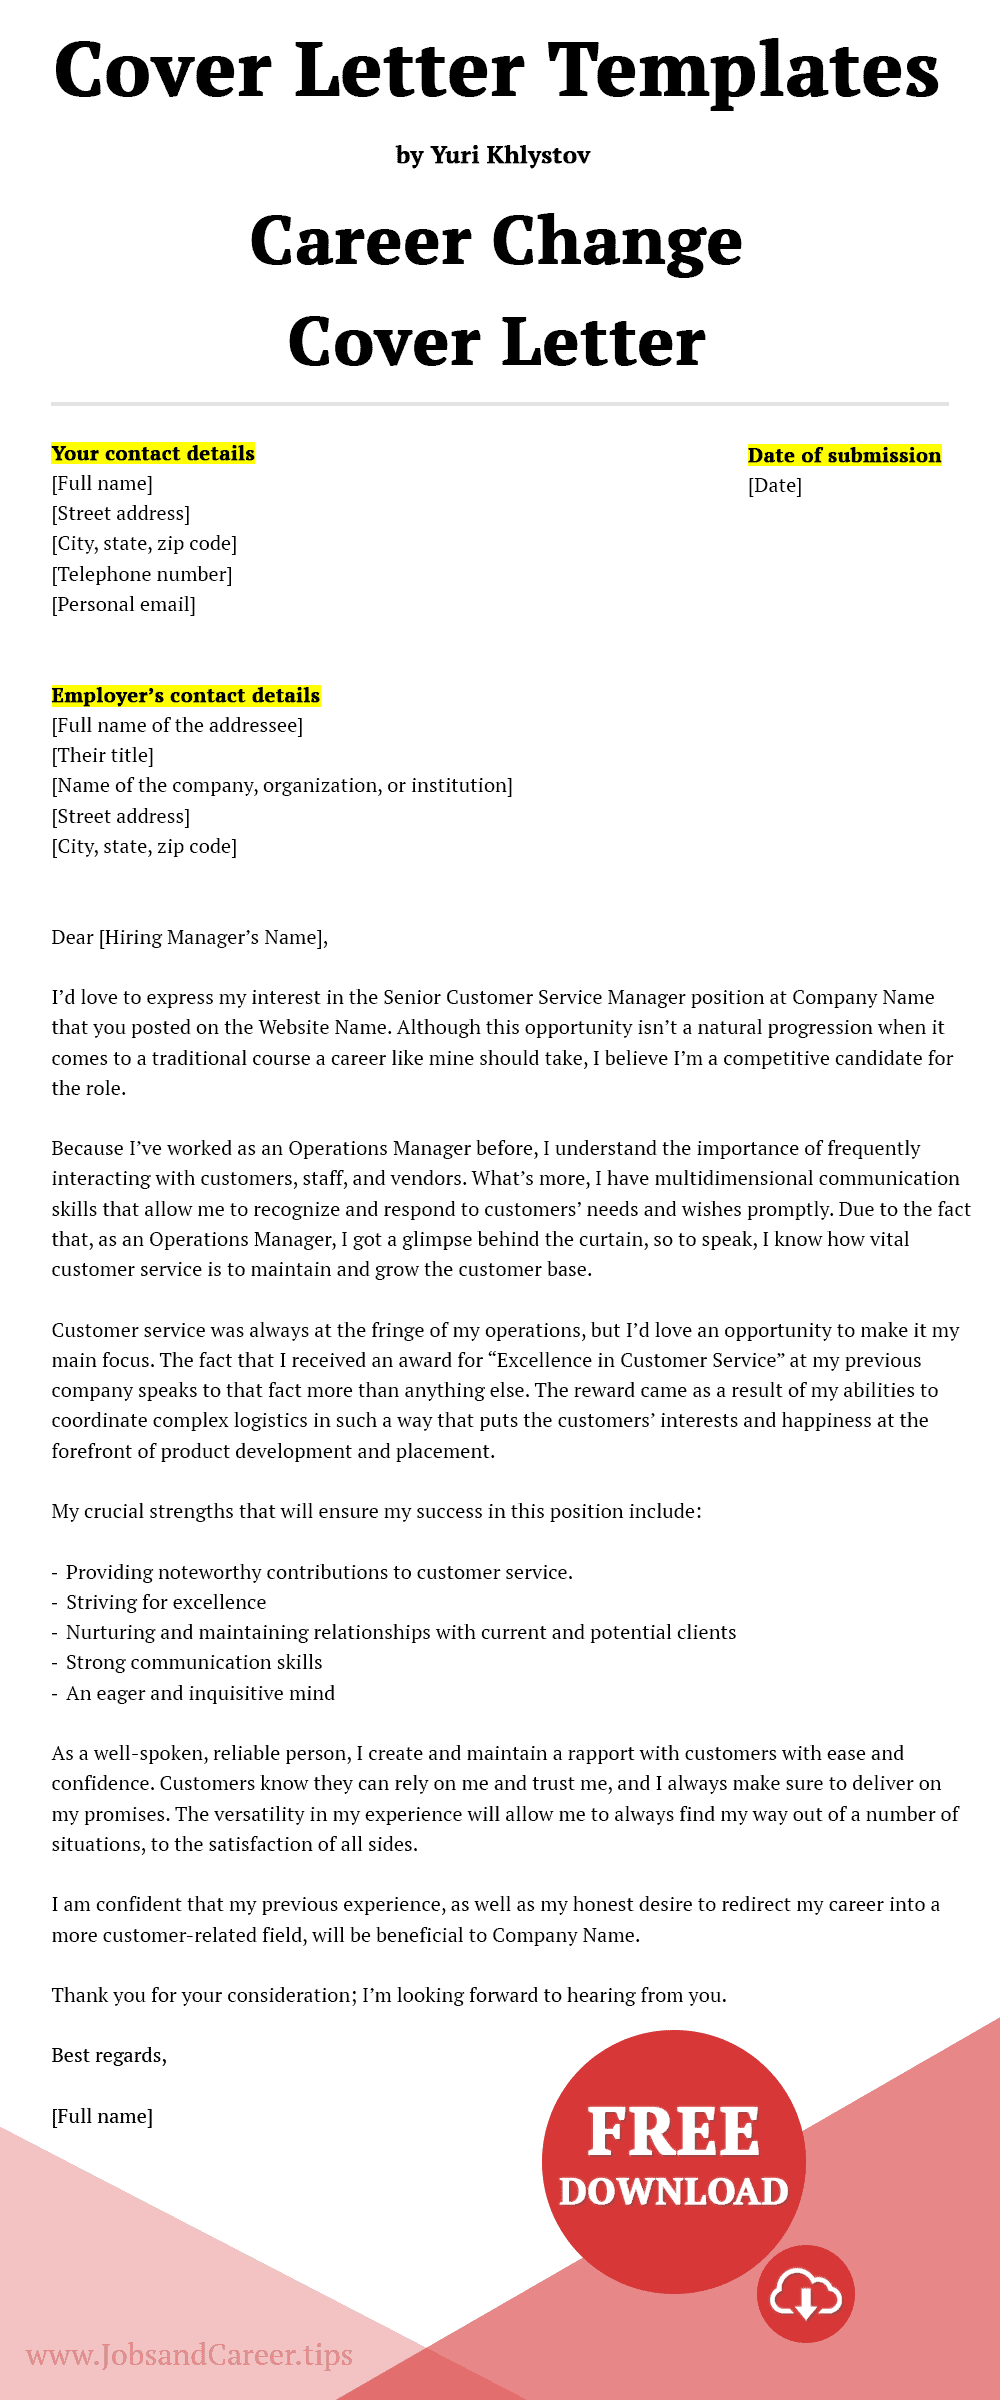 Click to download the career change cover letter template